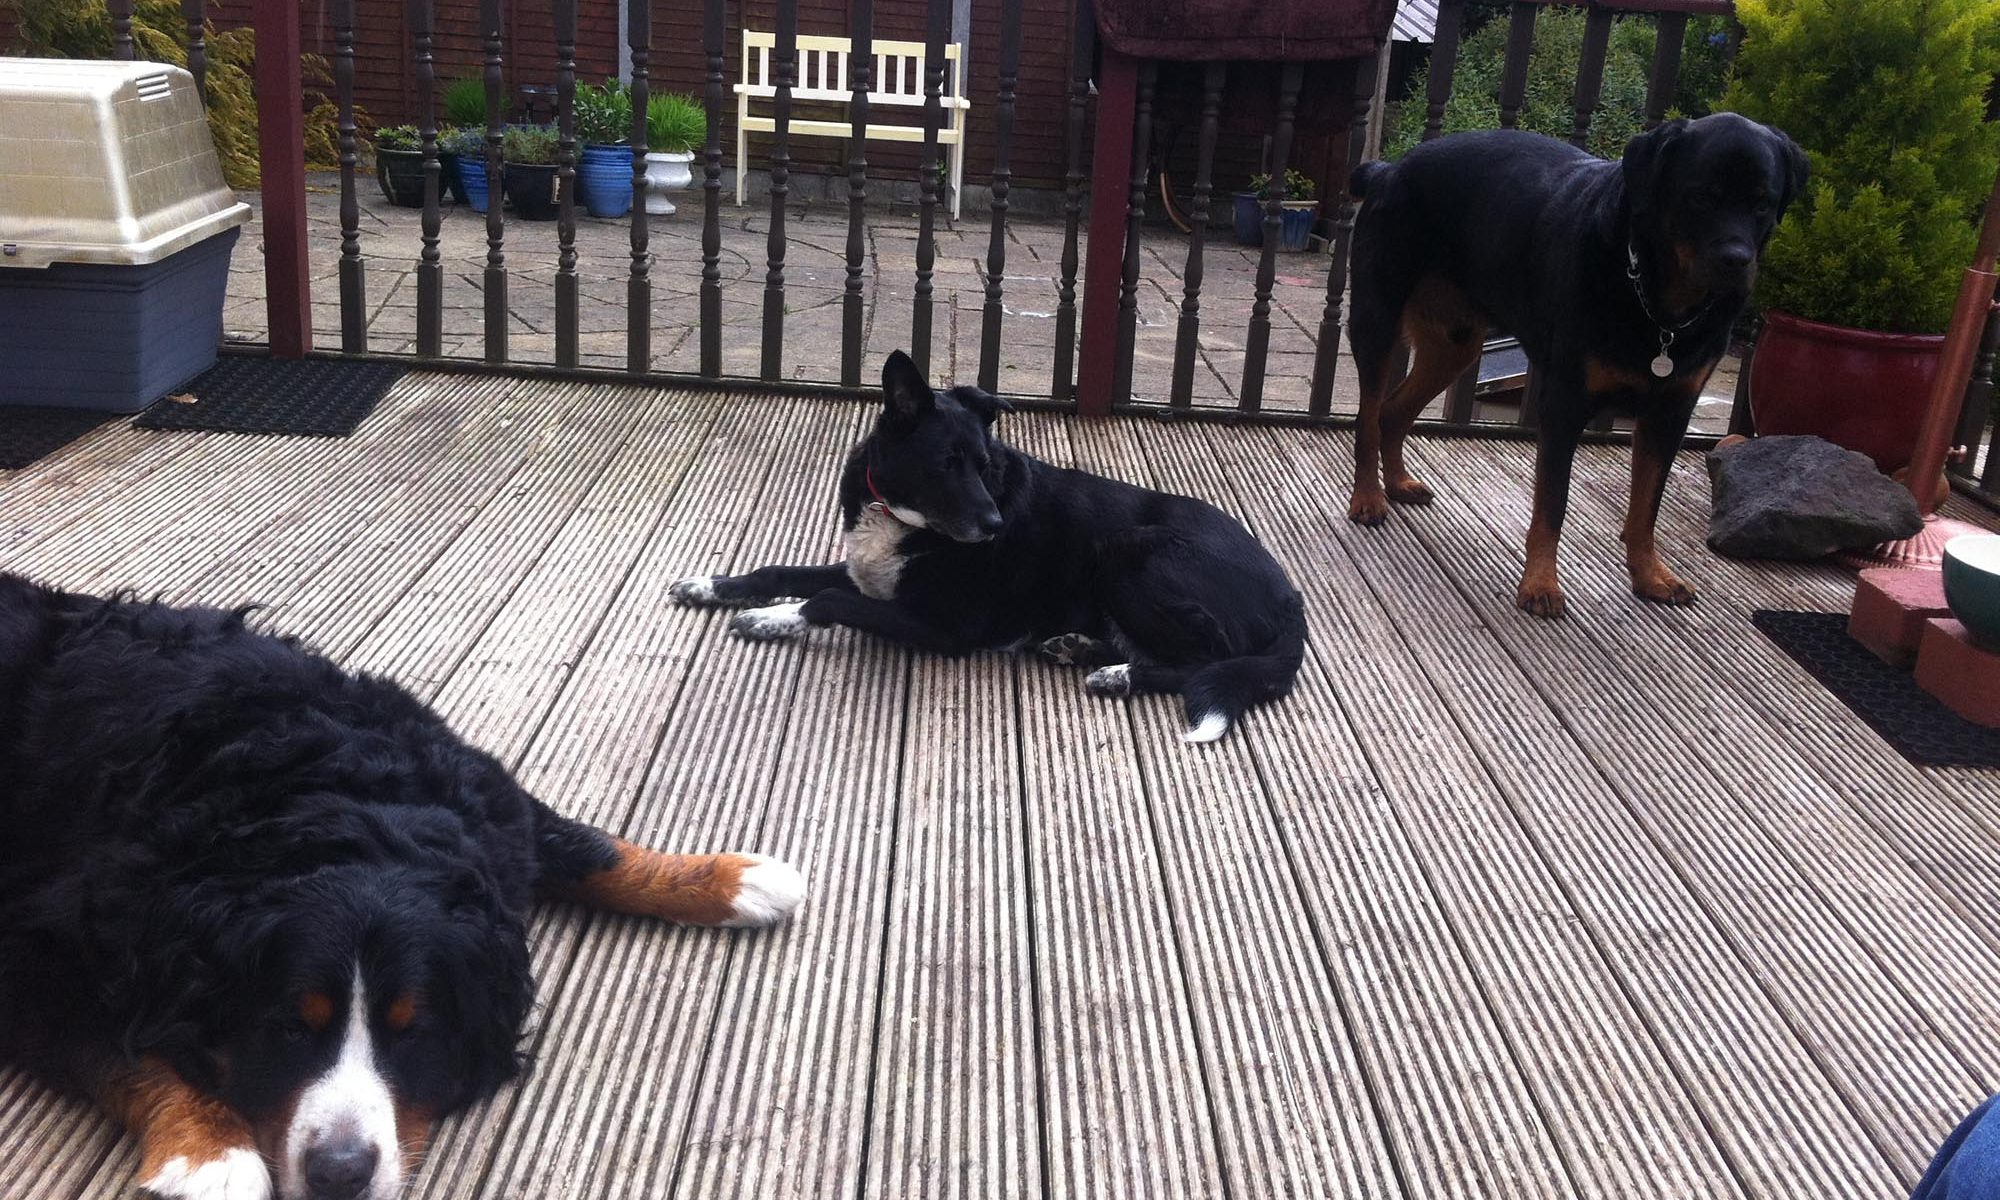 Dogs resting after walk